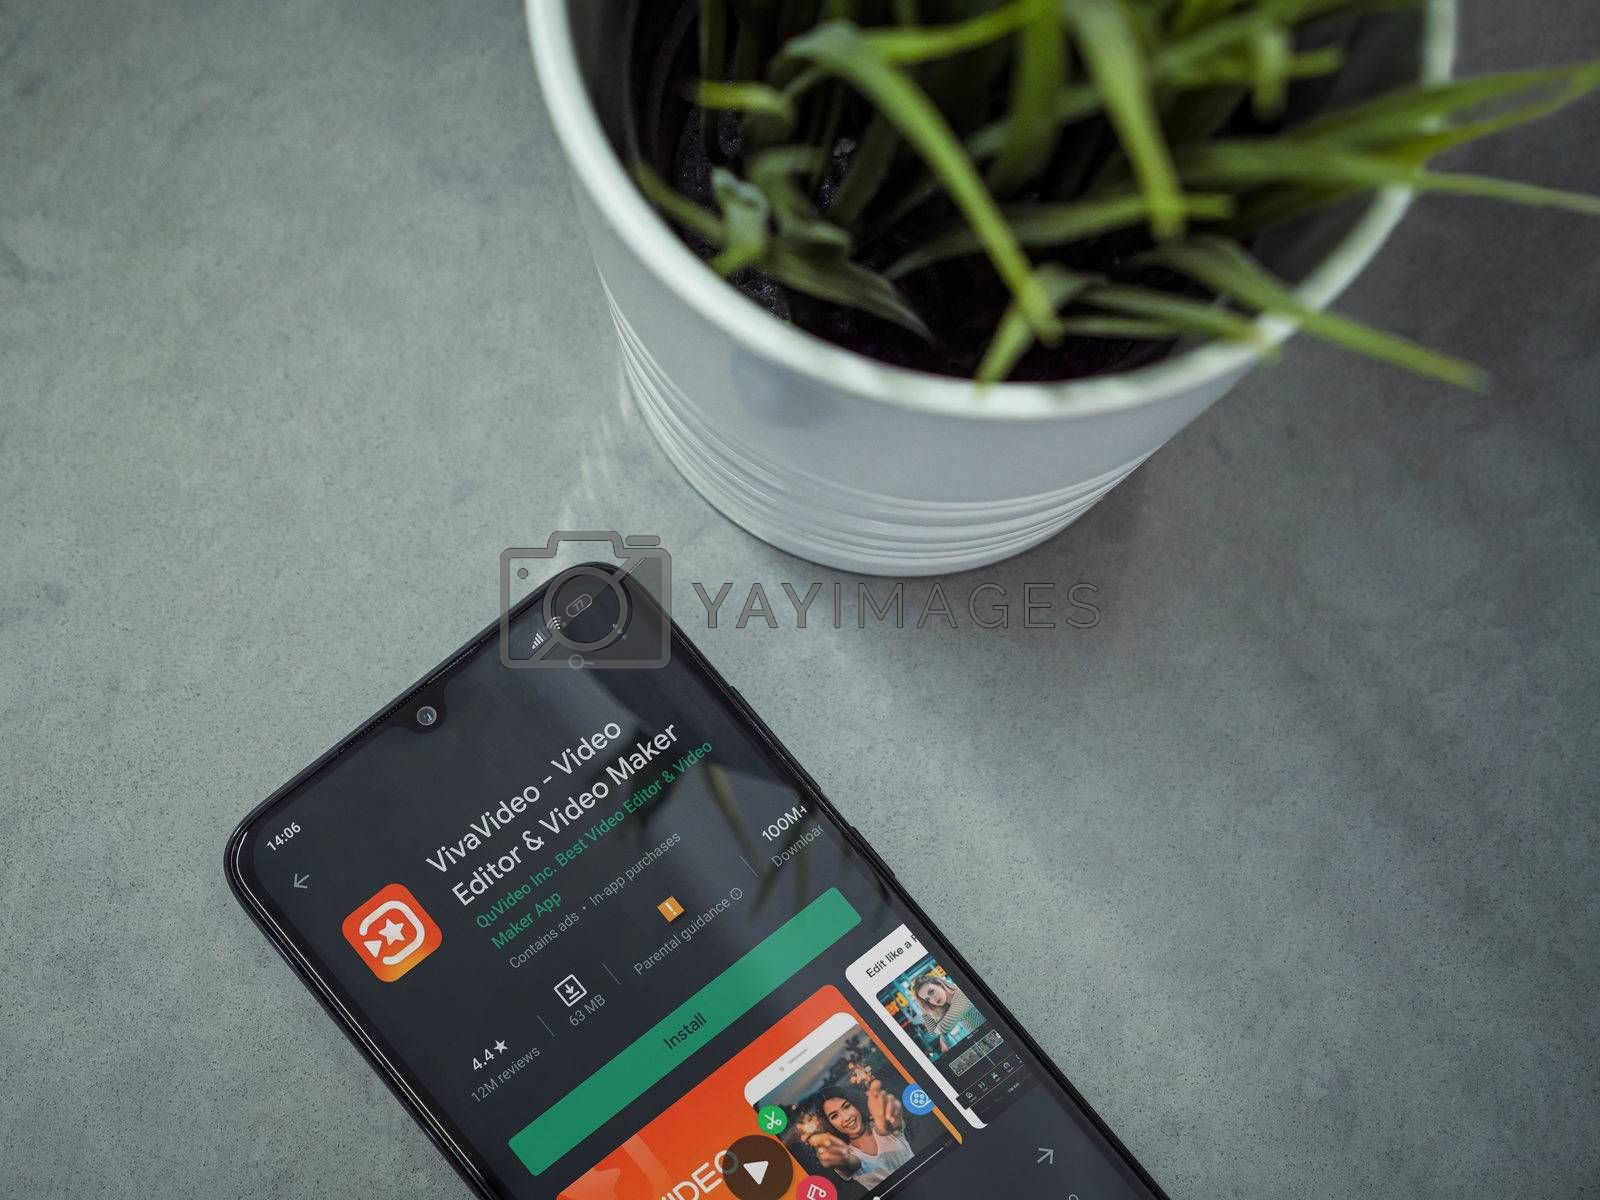 Lod, Israel - July 8, 2020: Modern minimalist office workspace with black mobile smartphone with VivaVideo Video Editor & Movie Maker app play store page on marble background.Closeup top view flat lay